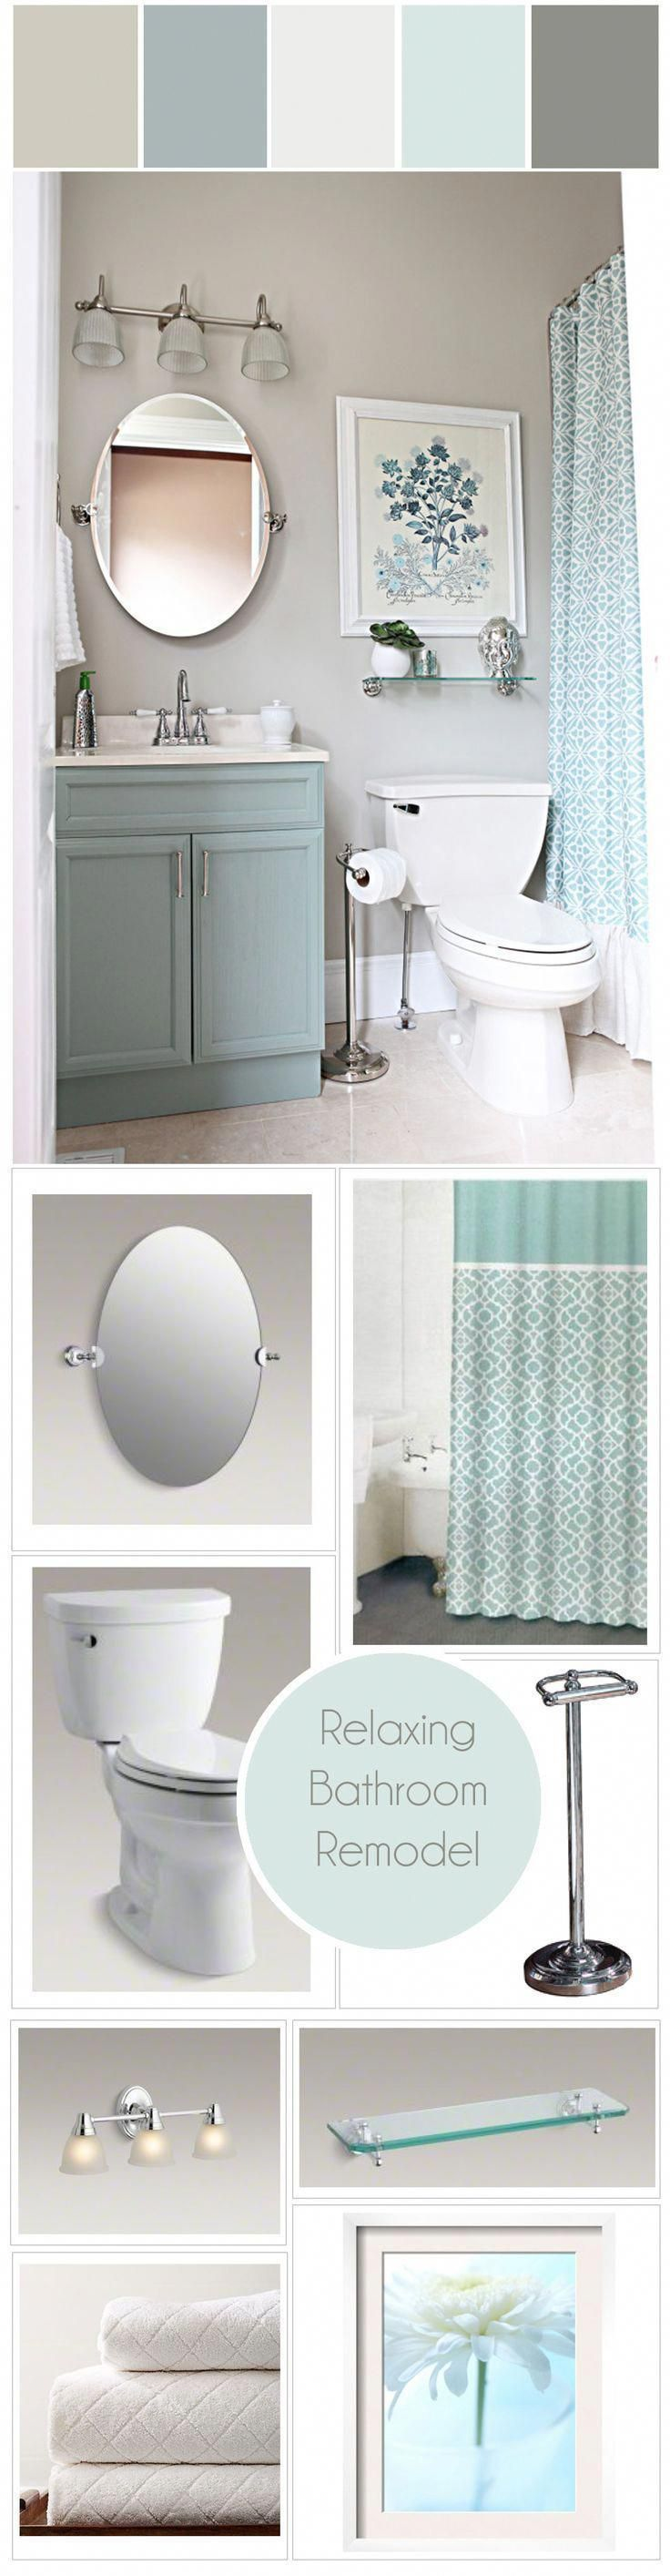 Photo of Find DIY bathroom project ideas for bathroom remodel and installing cabinets, ba…,  #Bathro…